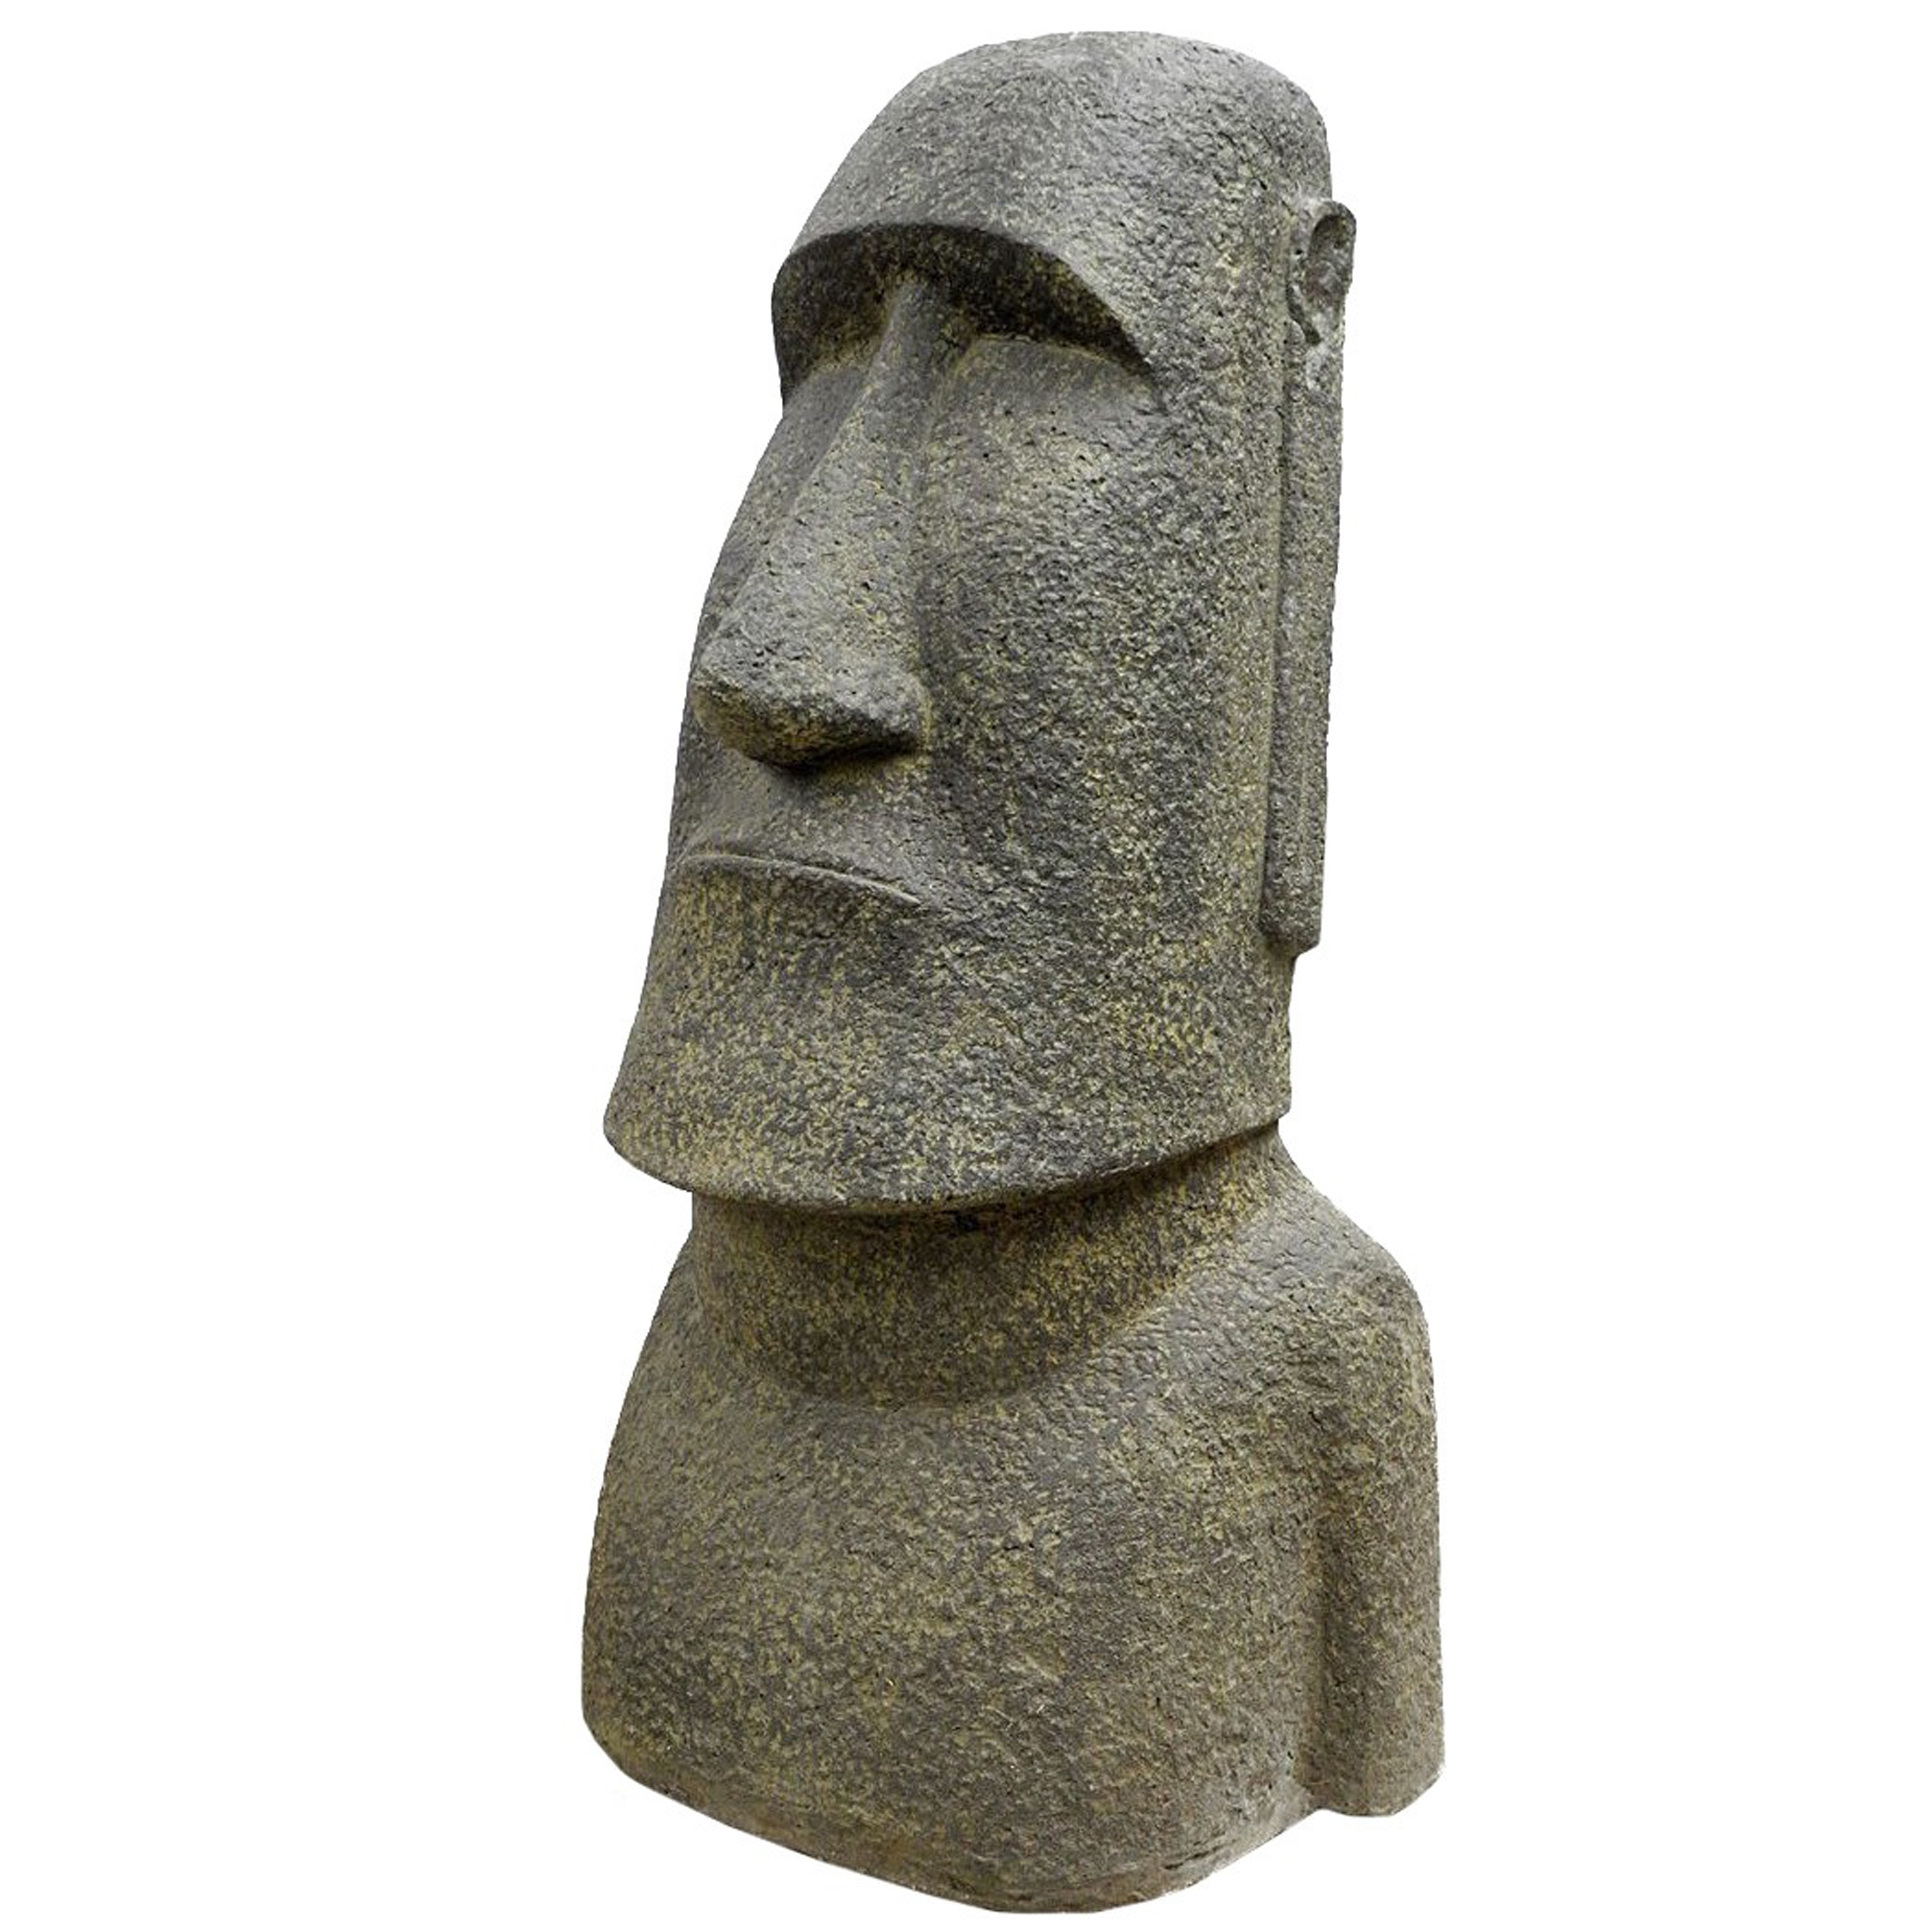 osterinsel moai figur skulptur stein lavasand bali tiki. Black Bedroom Furniture Sets. Home Design Ideas